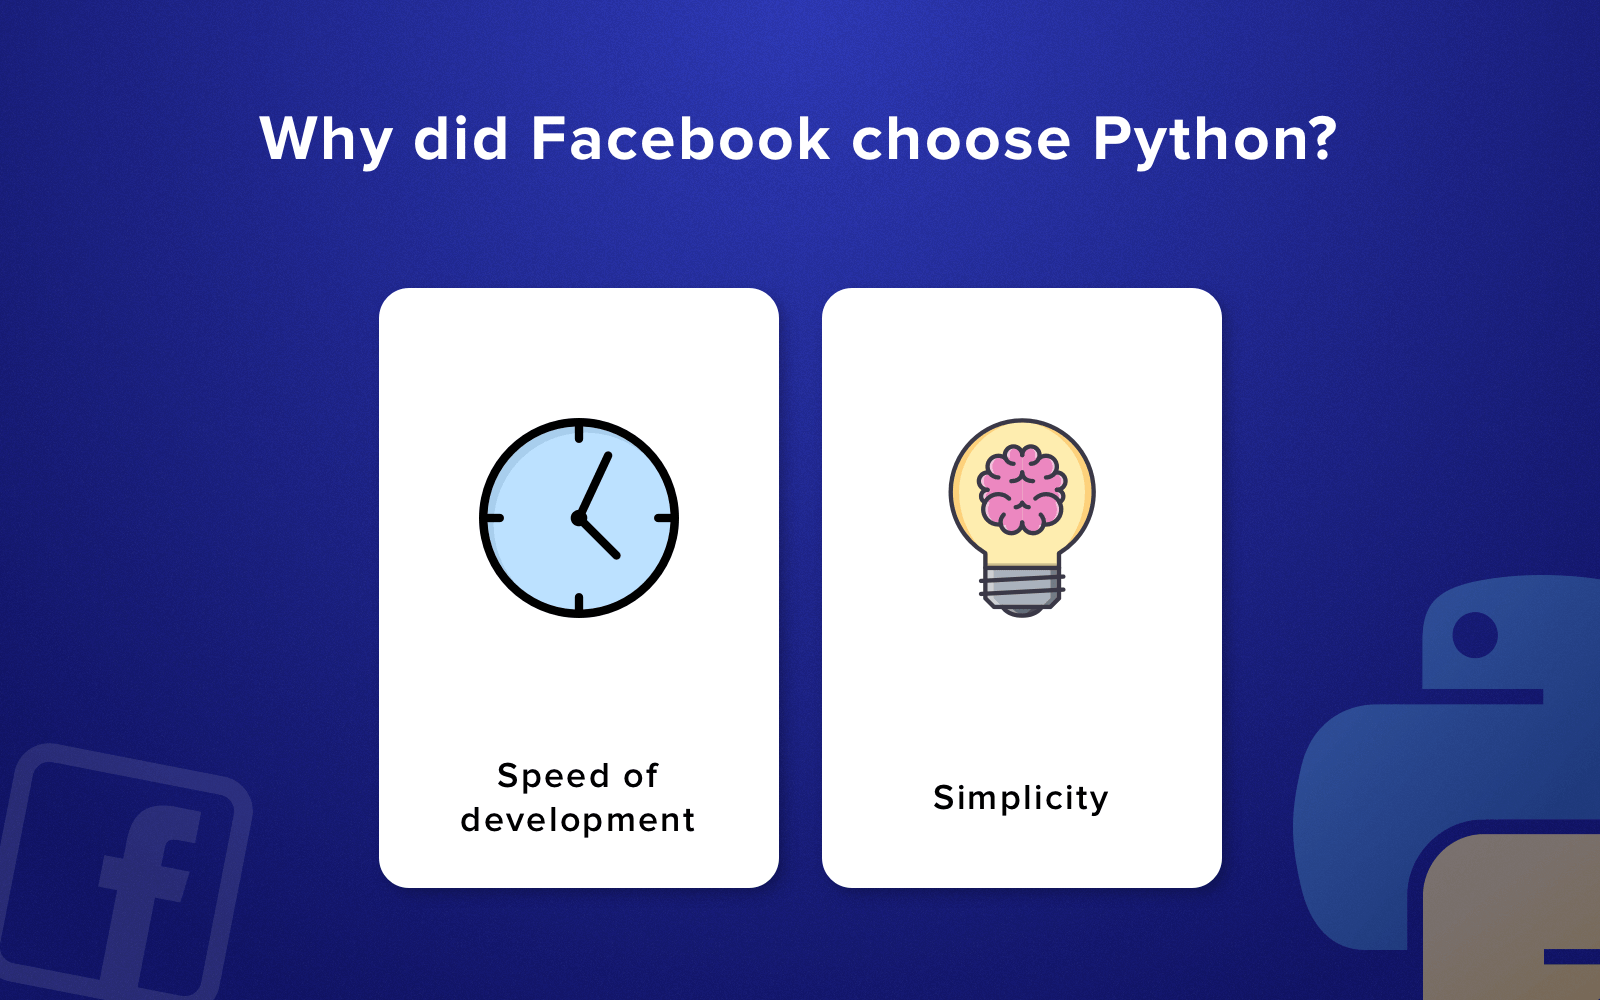 Advantages of Python: Why did Facebook choose it